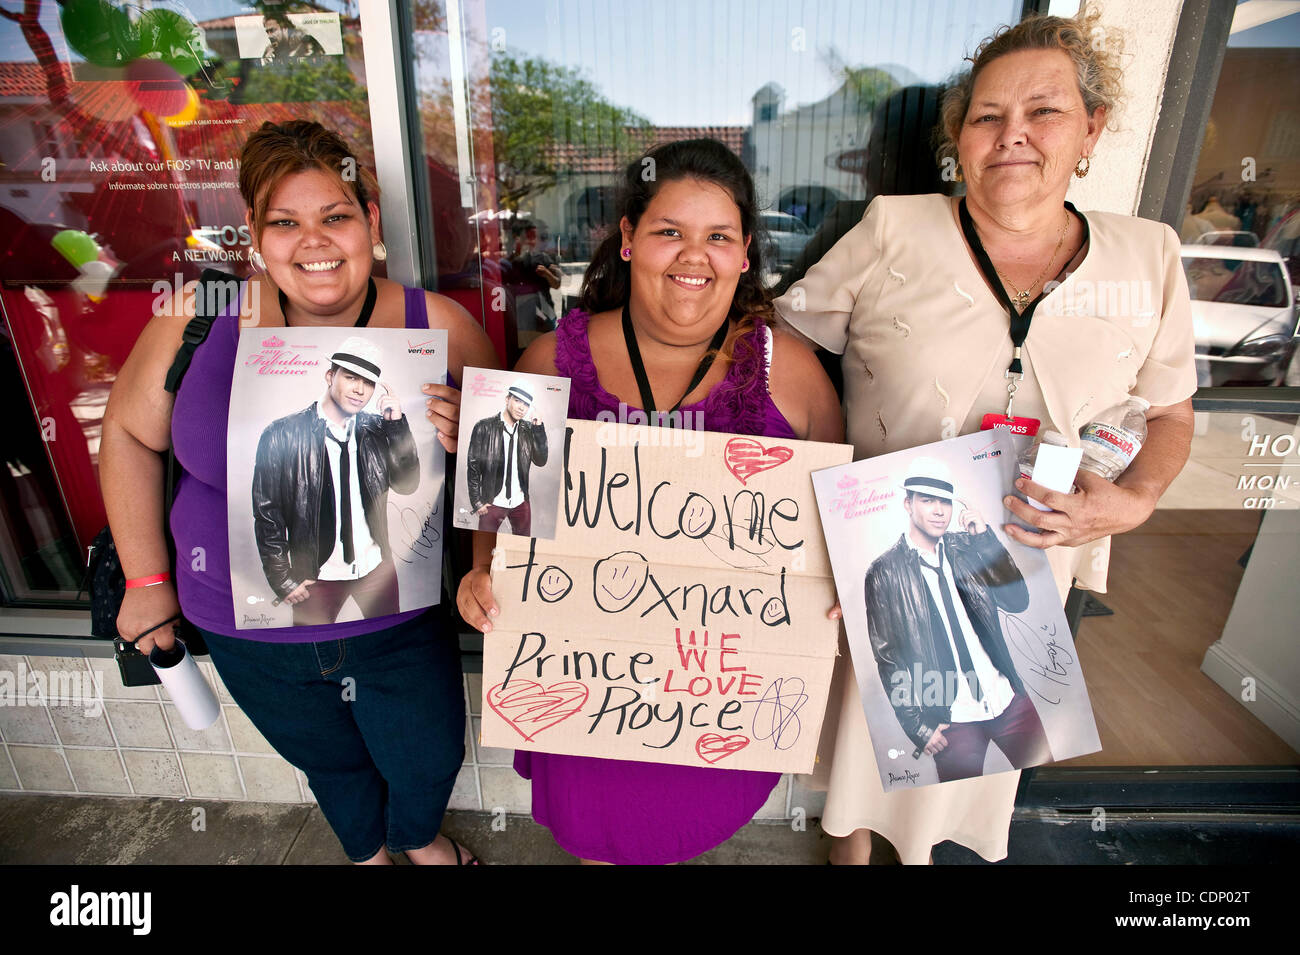 July 09 2011 oxnard california usa fans pose with freshly july 09 2011 oxnard california usa fans pose with freshly autographed posters after a meet and greet with latin recording sensation prince royce at a m4hsunfo